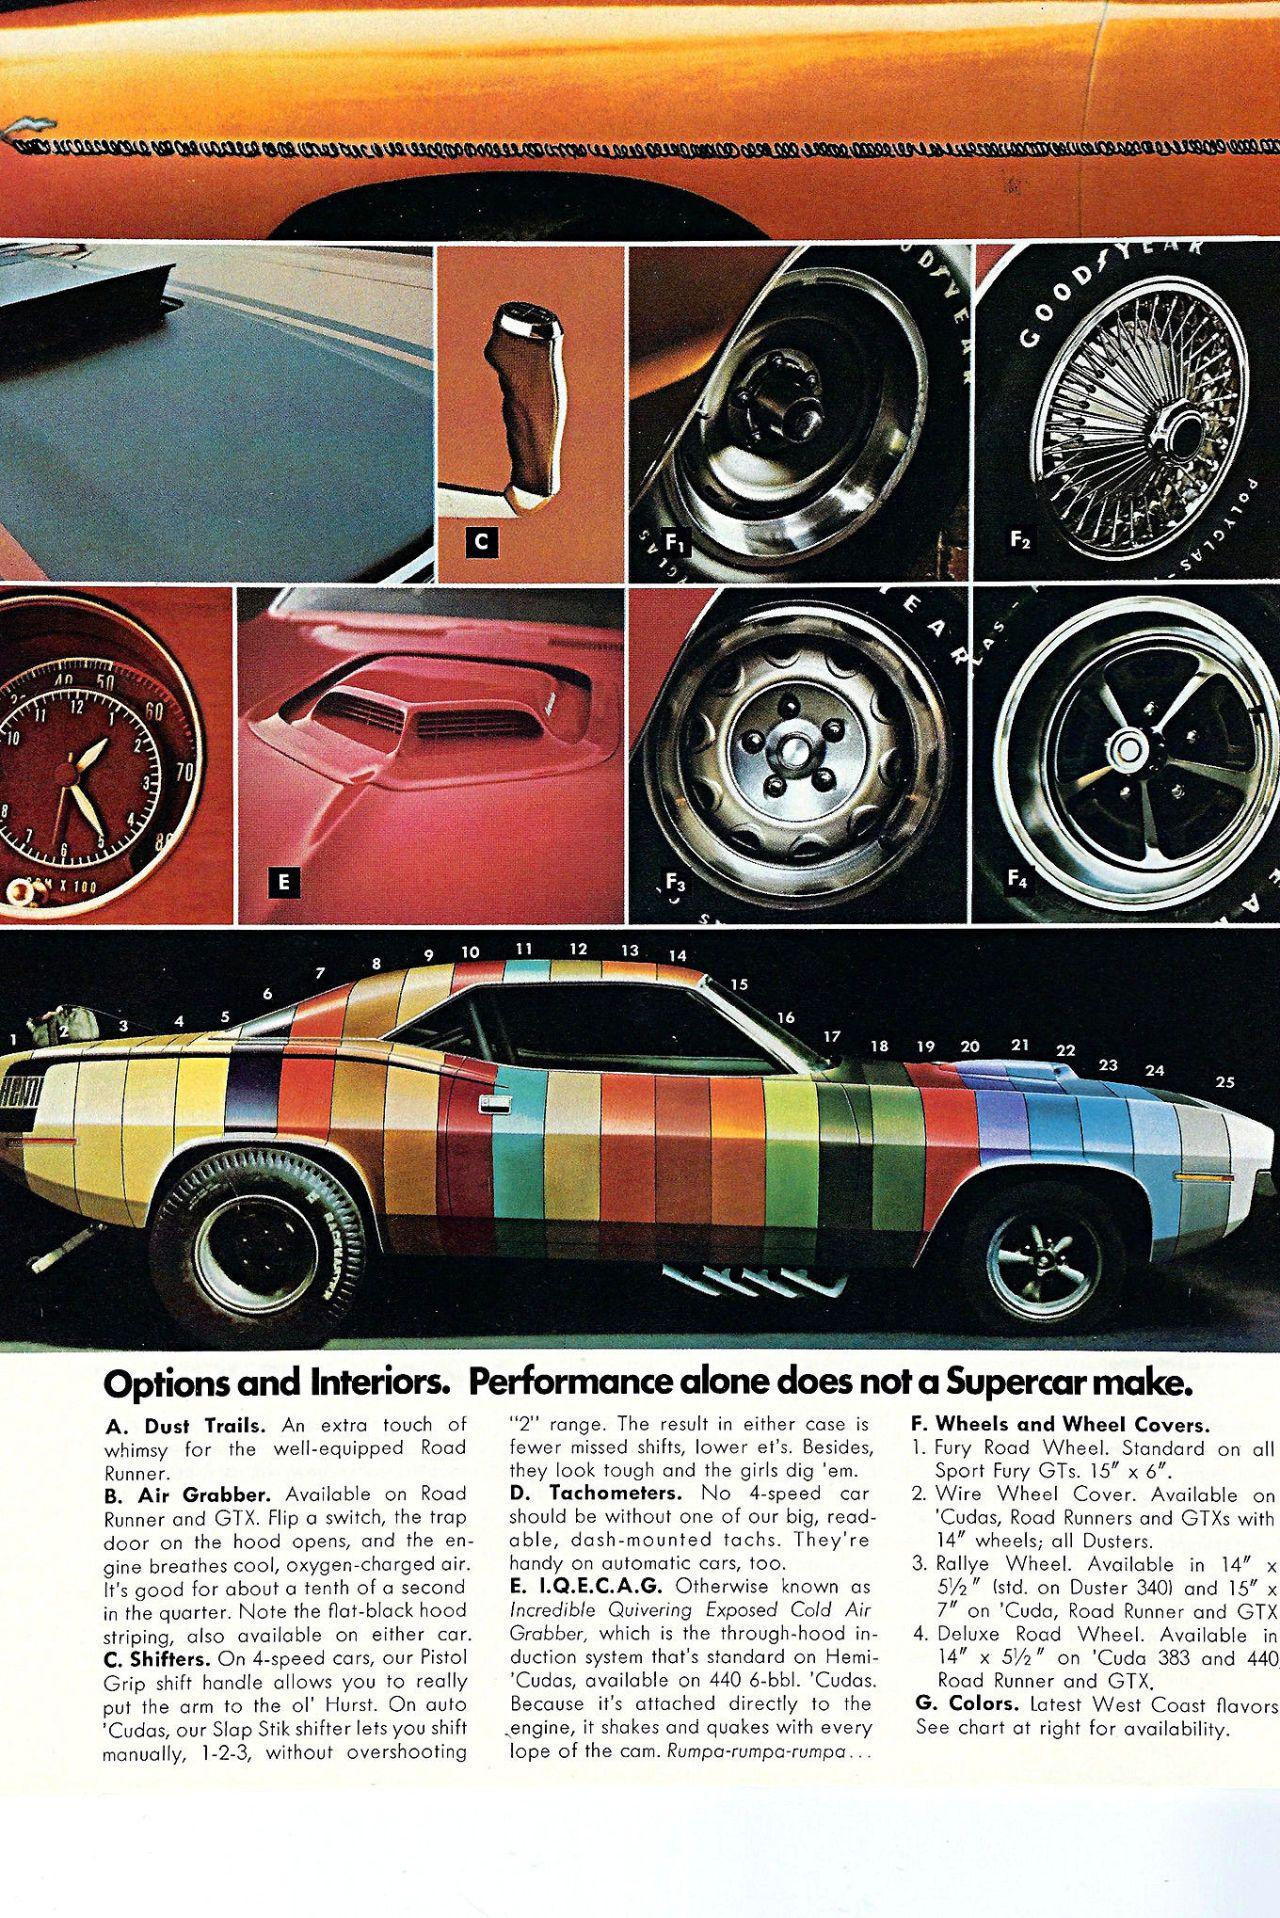 Road Lamp Wiring Diagram 1970 Barracuda Trusted Schematics 70 Plymouth Runner The Fascinating Story Behind Paint Chip Google Diagrams